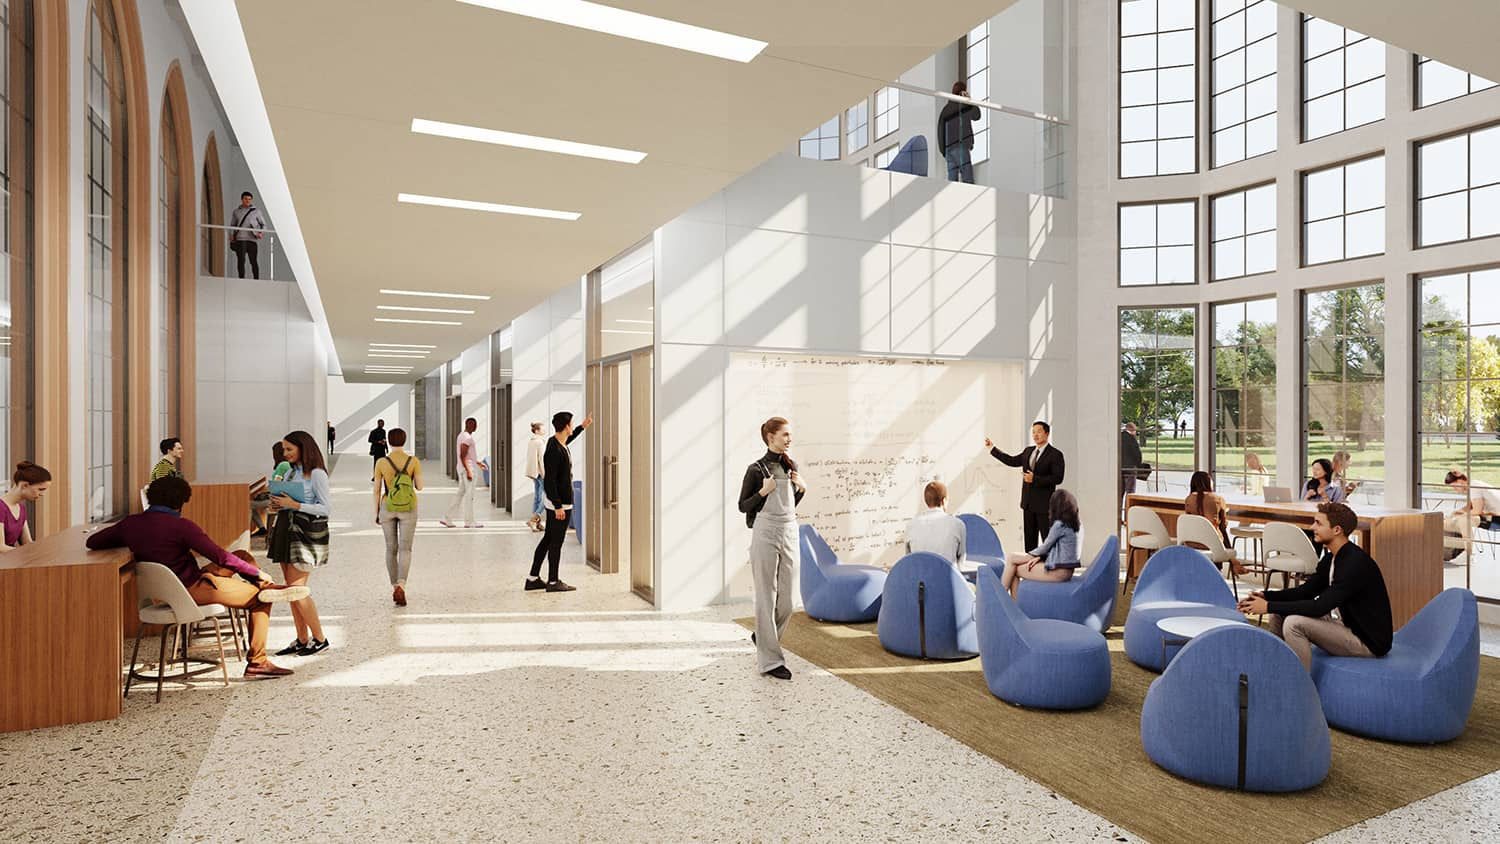 Rendering of one of the student collaboration spaces with access to daylight and a variety of furniture options.